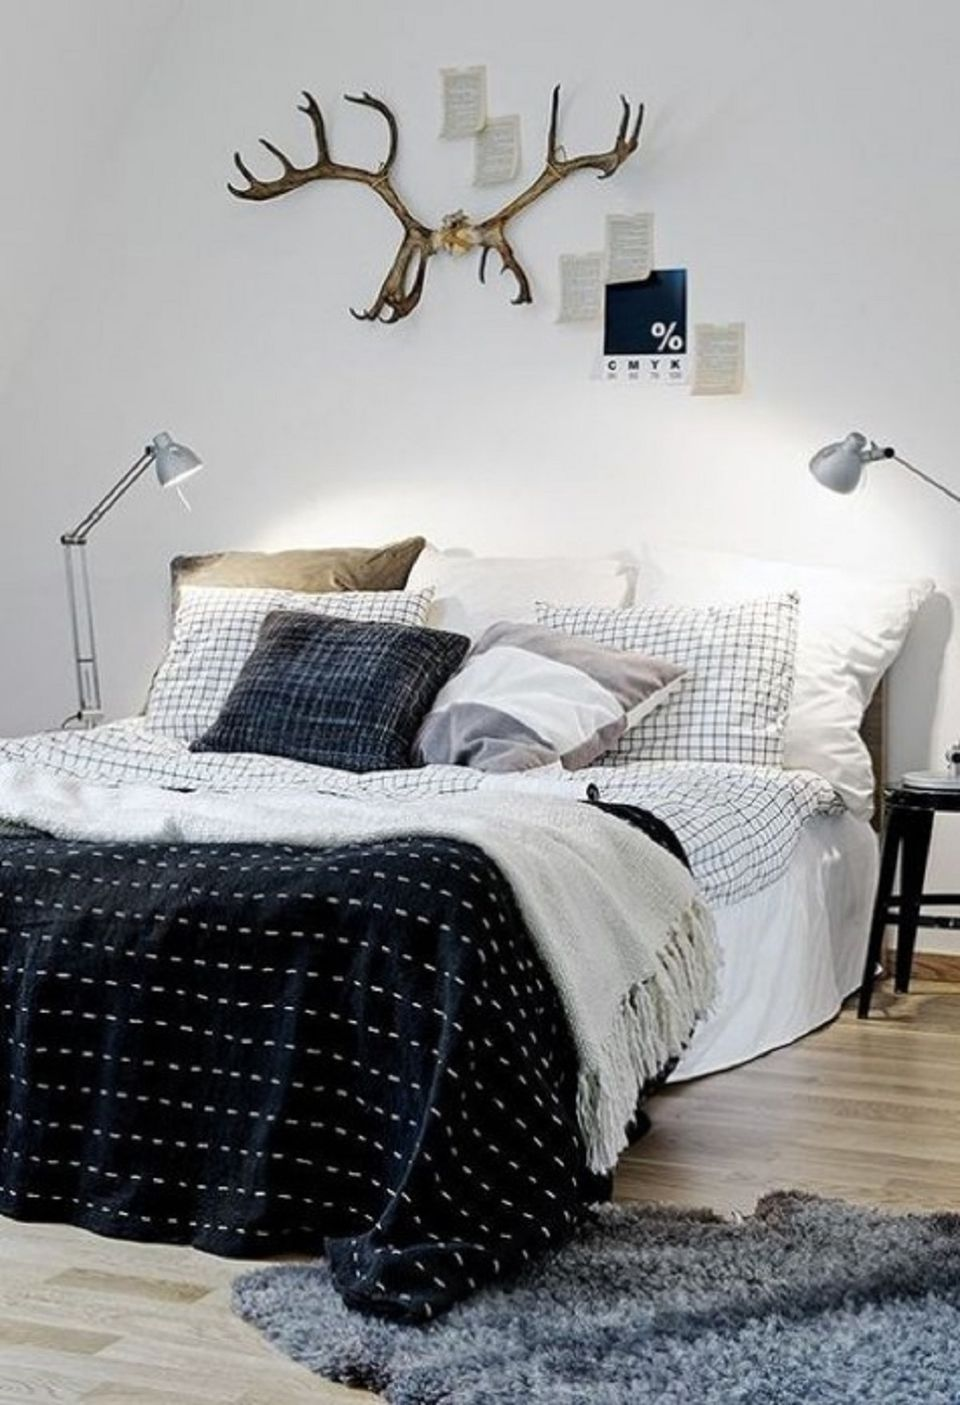 Masculine Scandinavian bedroom